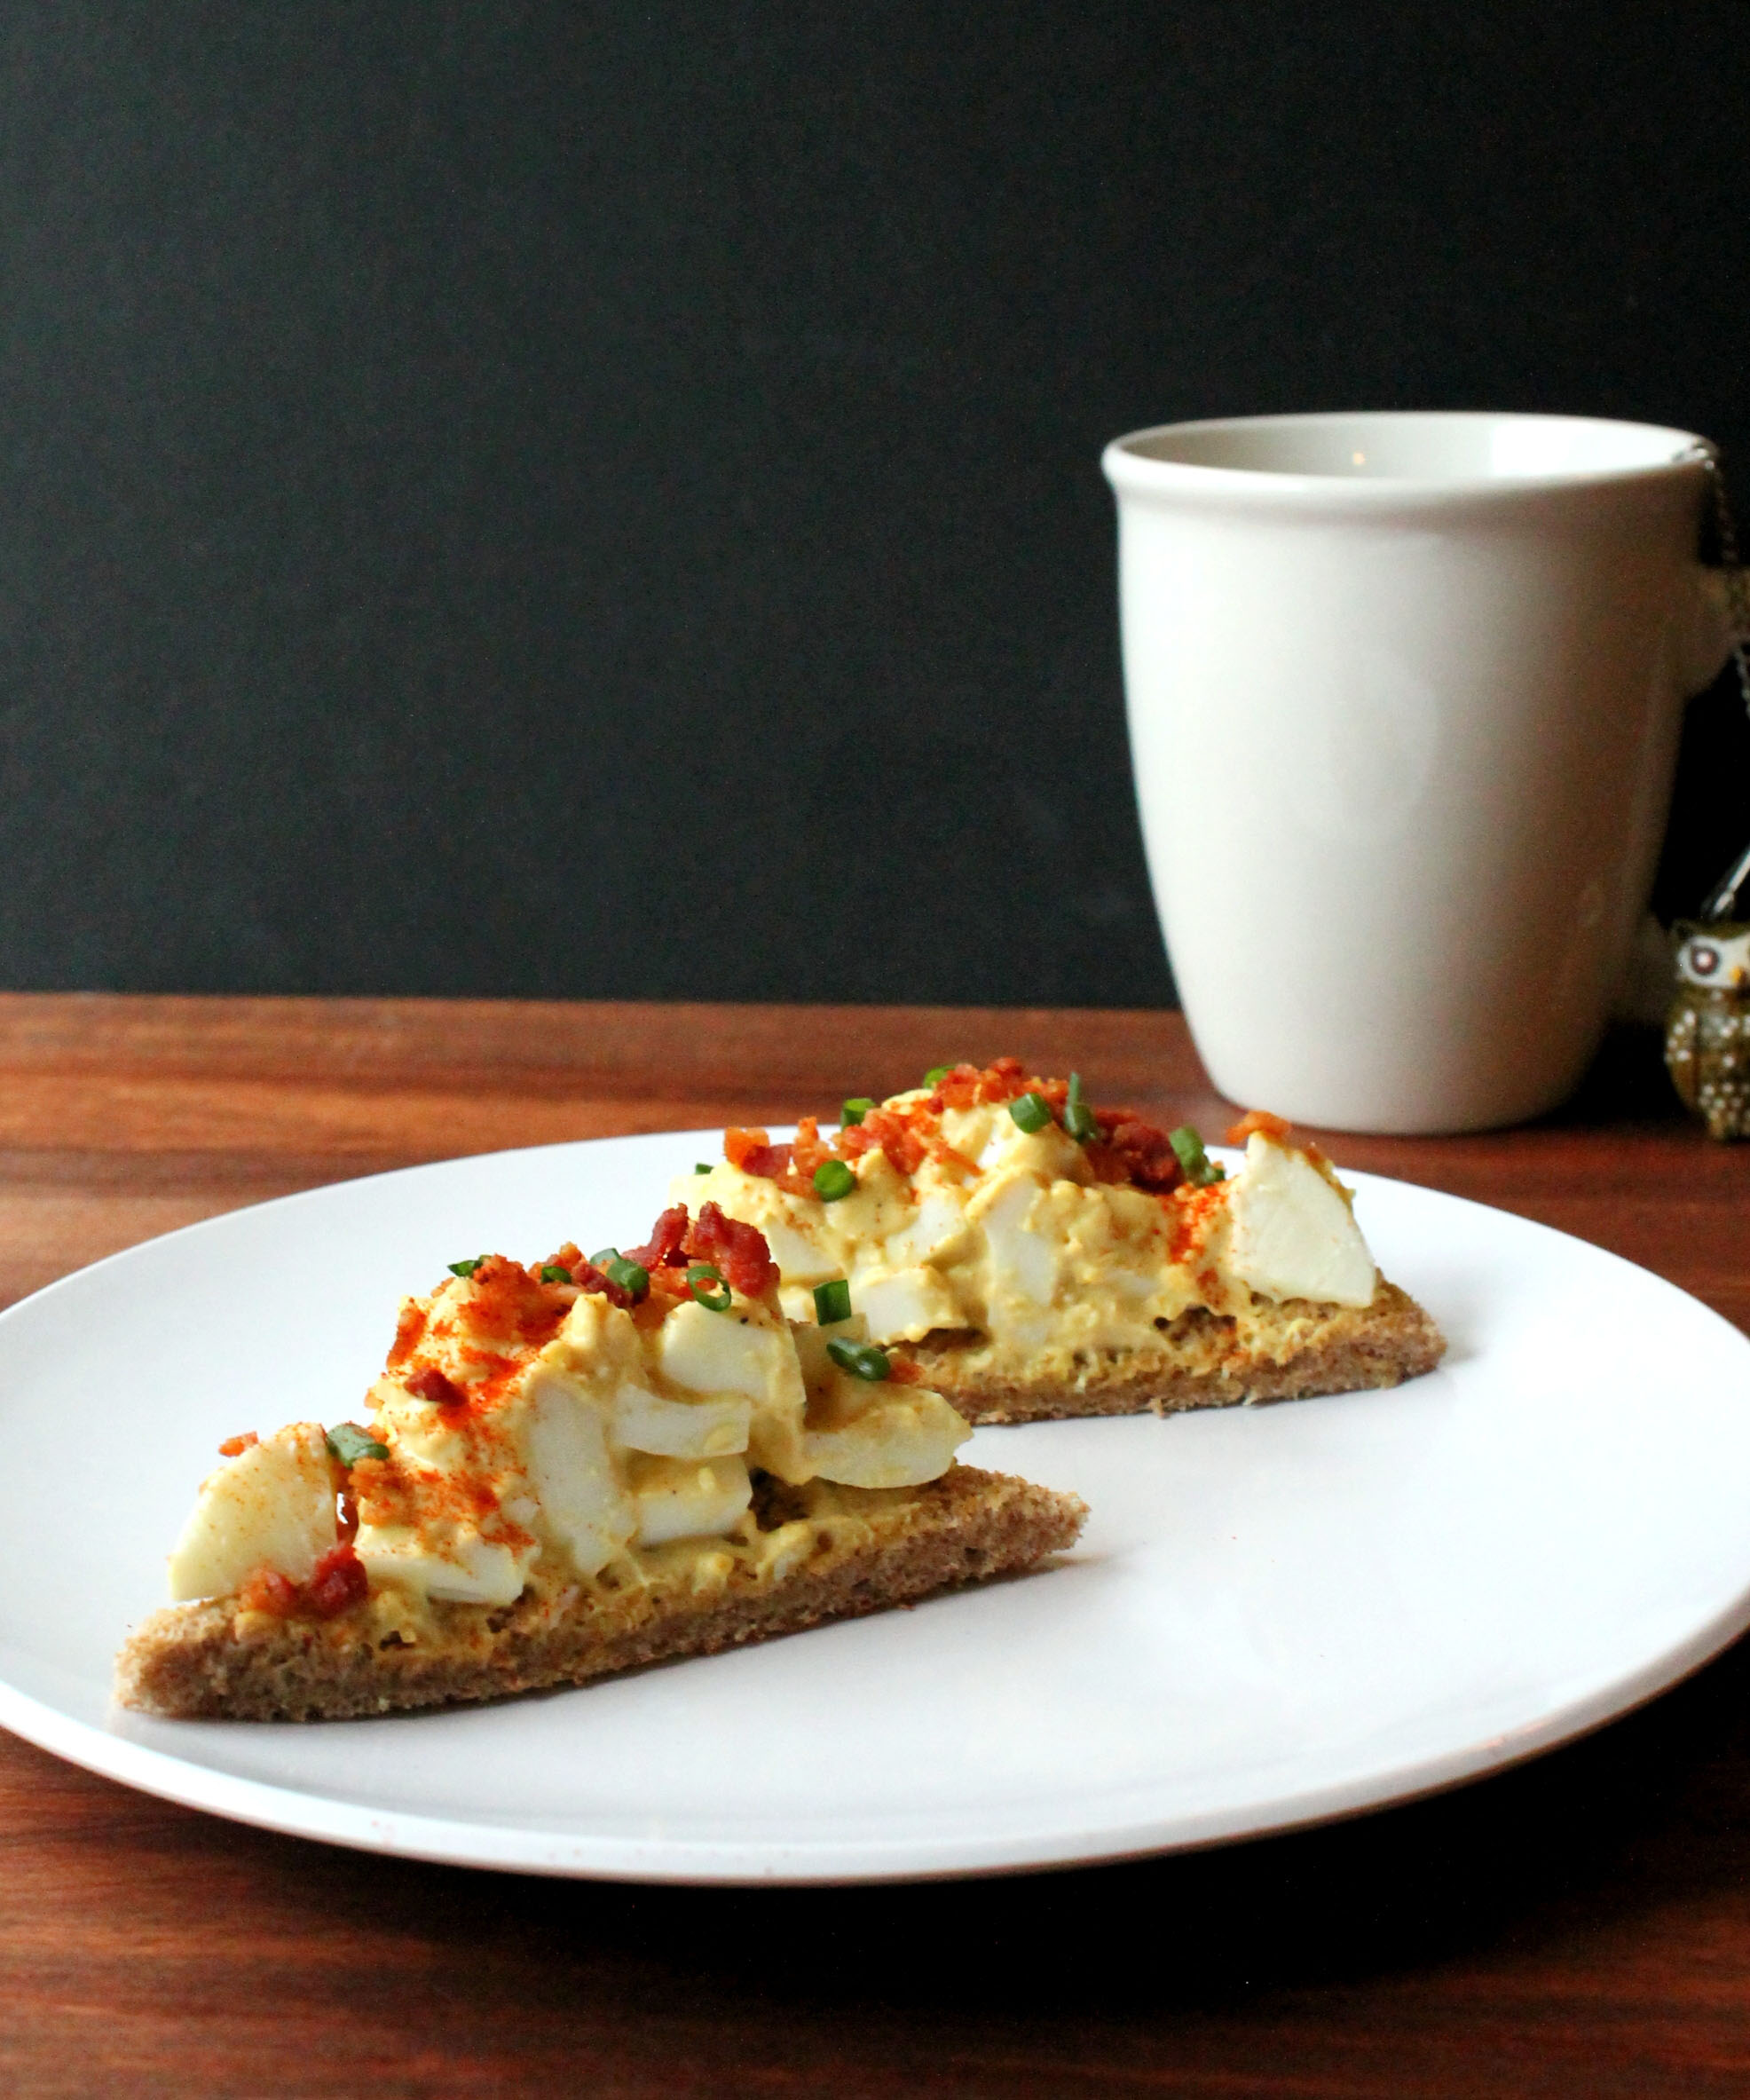 Two wedges of open-faced egg salad tea sandwiches sit on a white plate with a white mug of tea in the background.